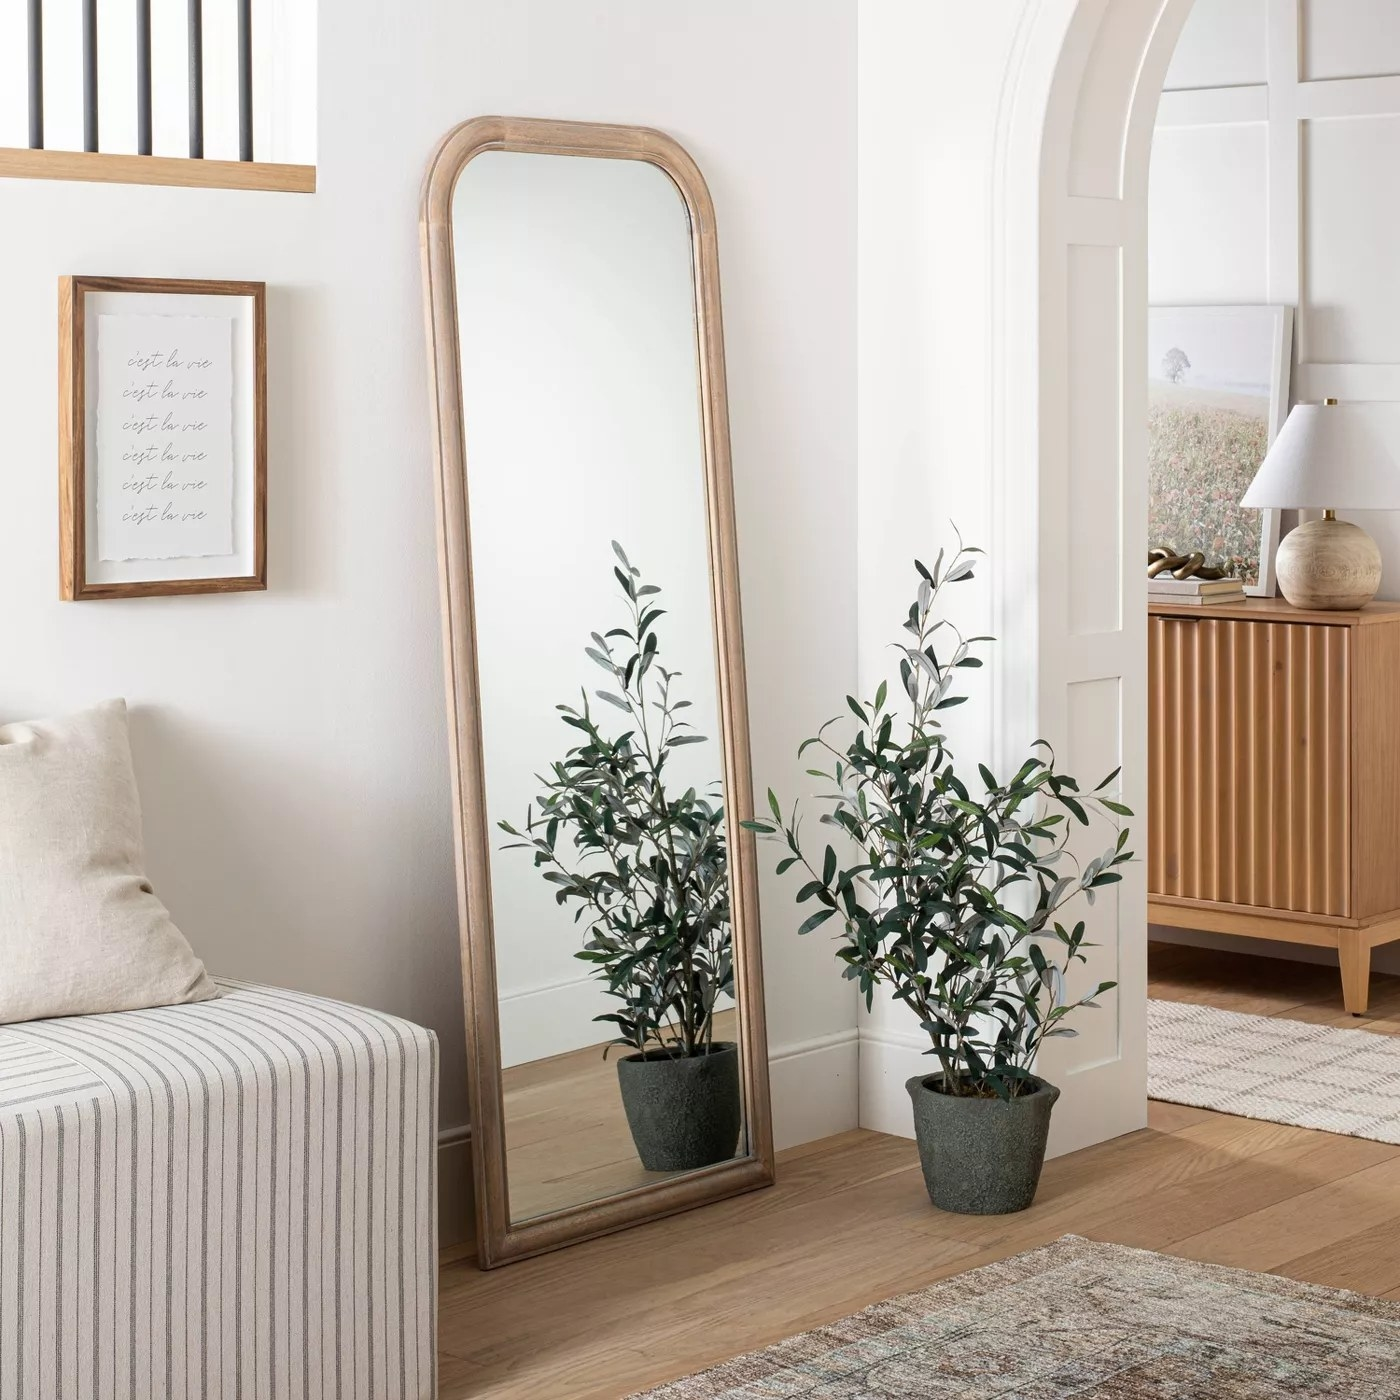 The full-length mirror with a wooden frame and rounded edges in a living room